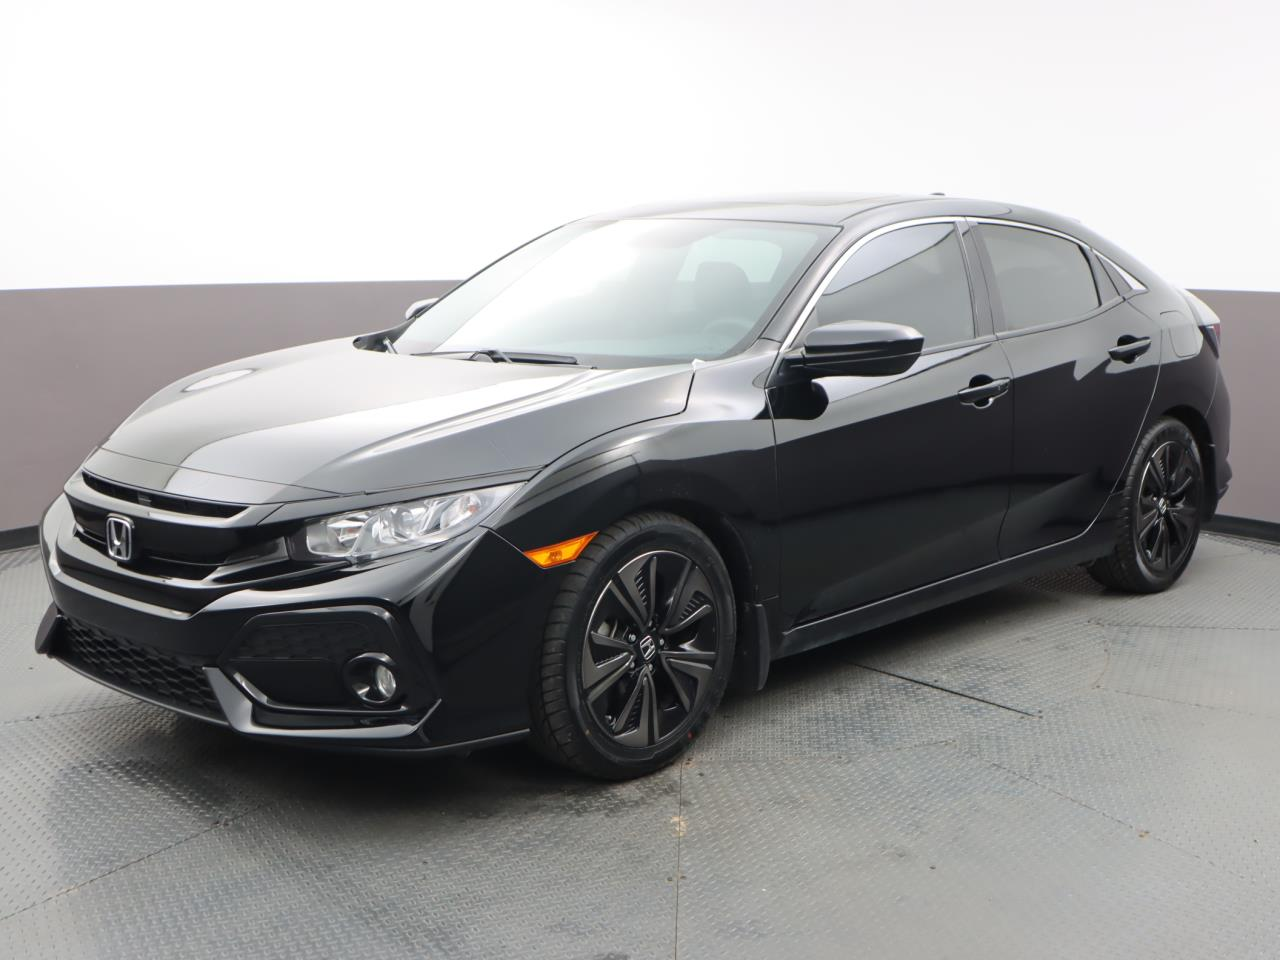 Used HONDA CIVIC-HATCHBACK 2019 MIAMI EX